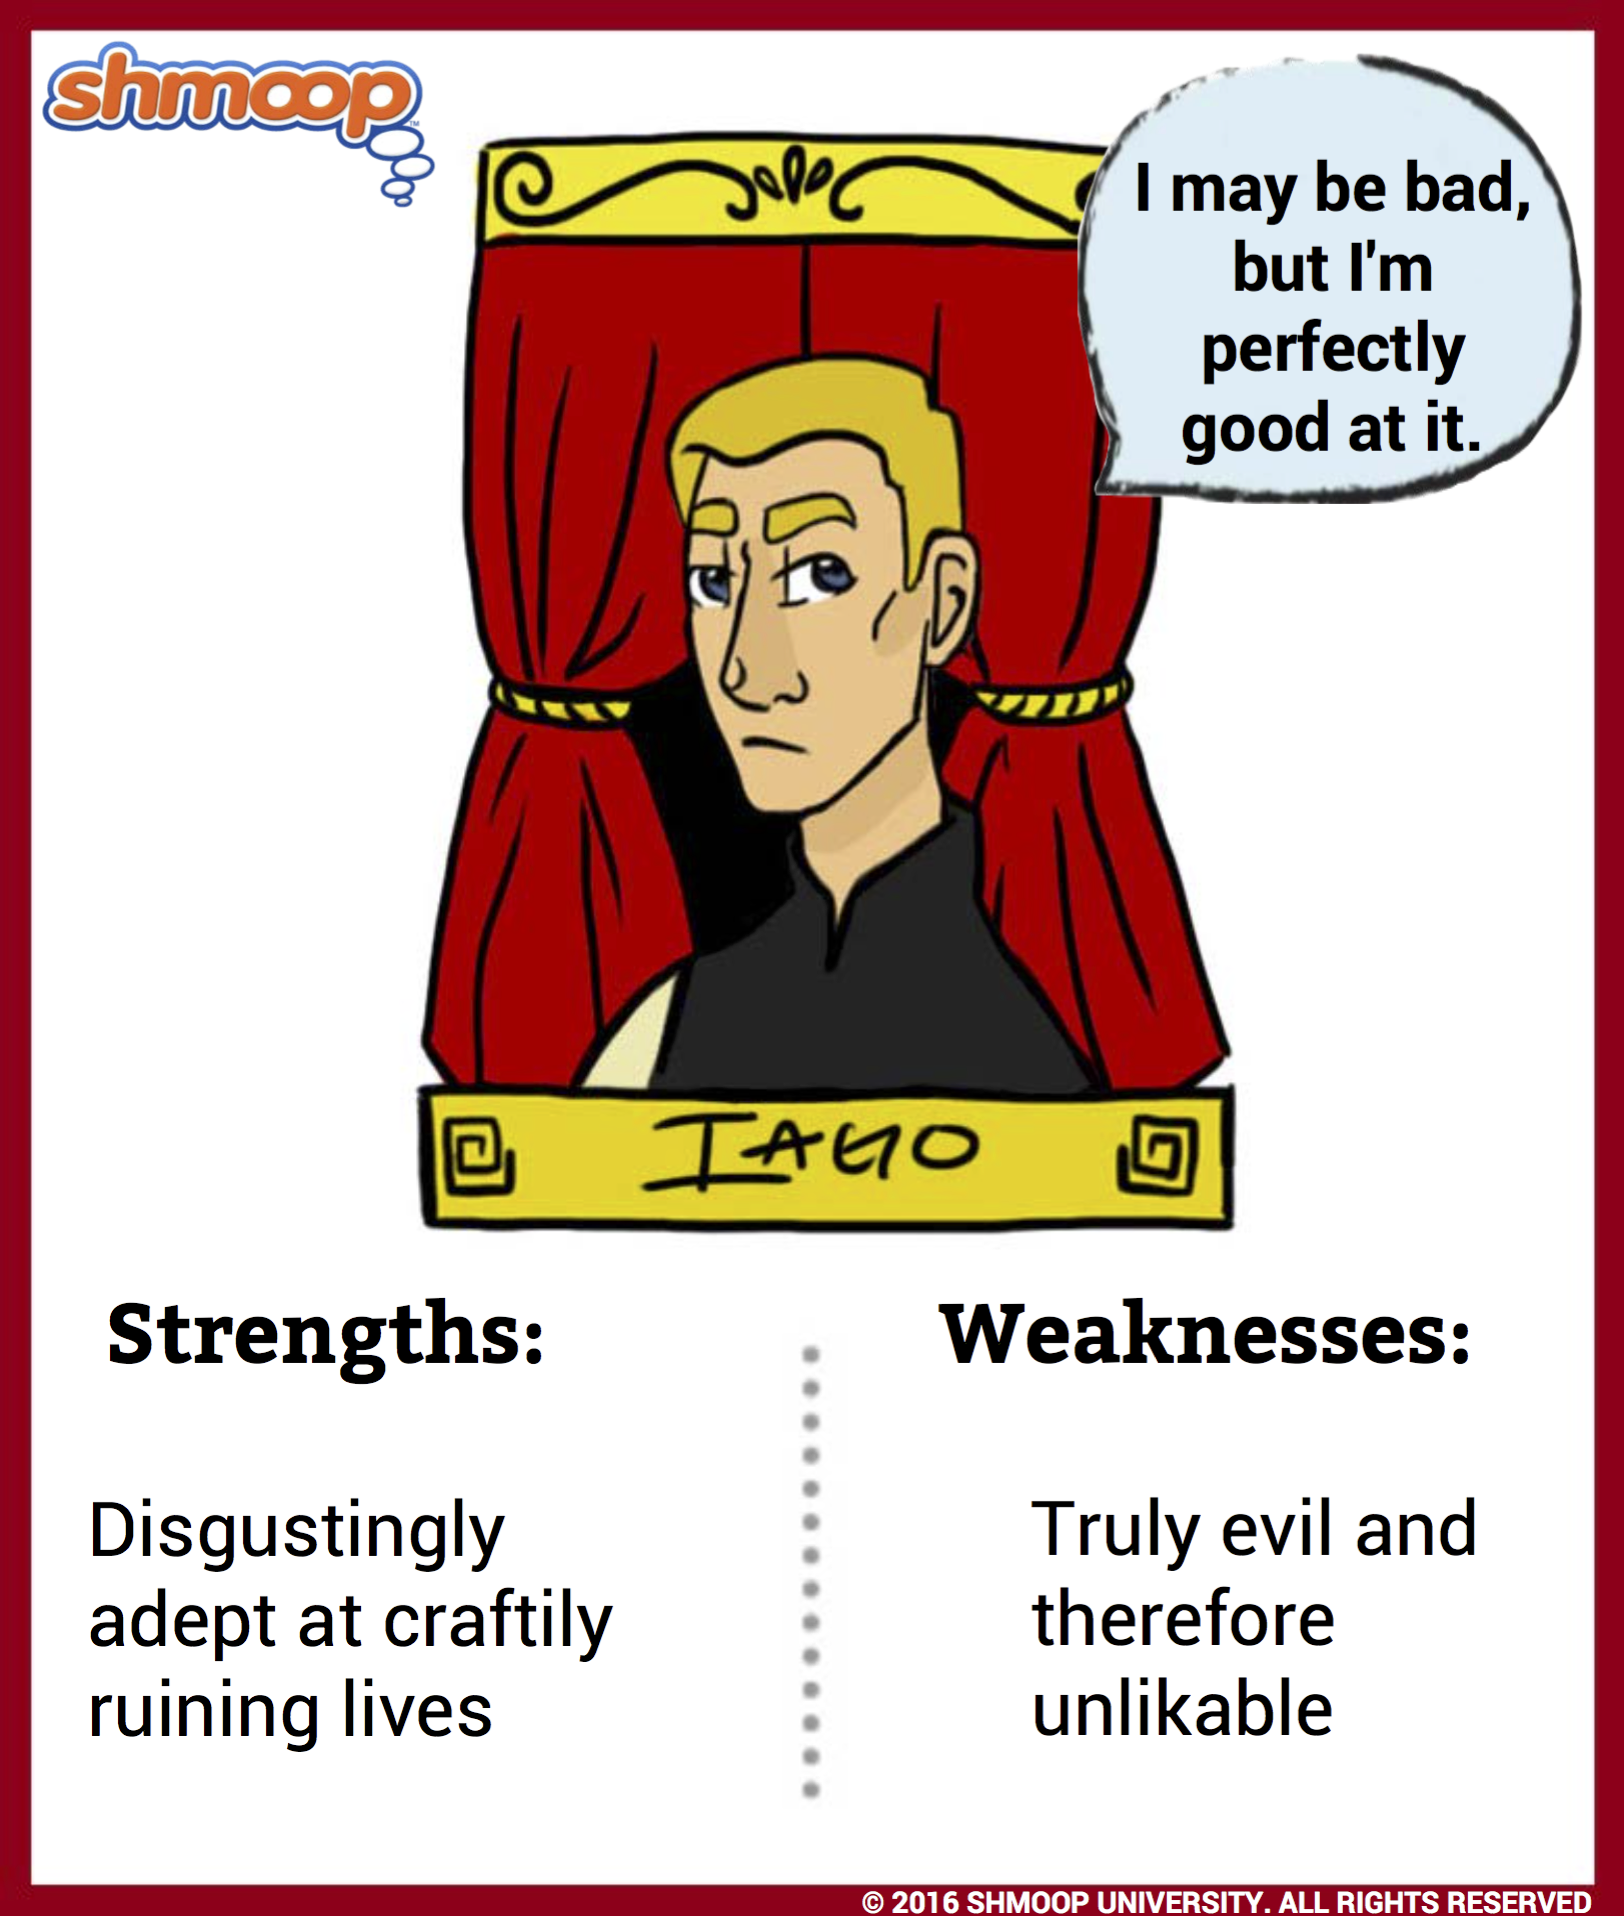 a character analysis of iago in othello by william shakespeare Everything you ever wanted to know about iago in othello, written by masters of this stuff just for you skip to navigation  othello by william shakespeare home / literature / othello / characters /  we could also argue that iago's character is a kind of vice figure.